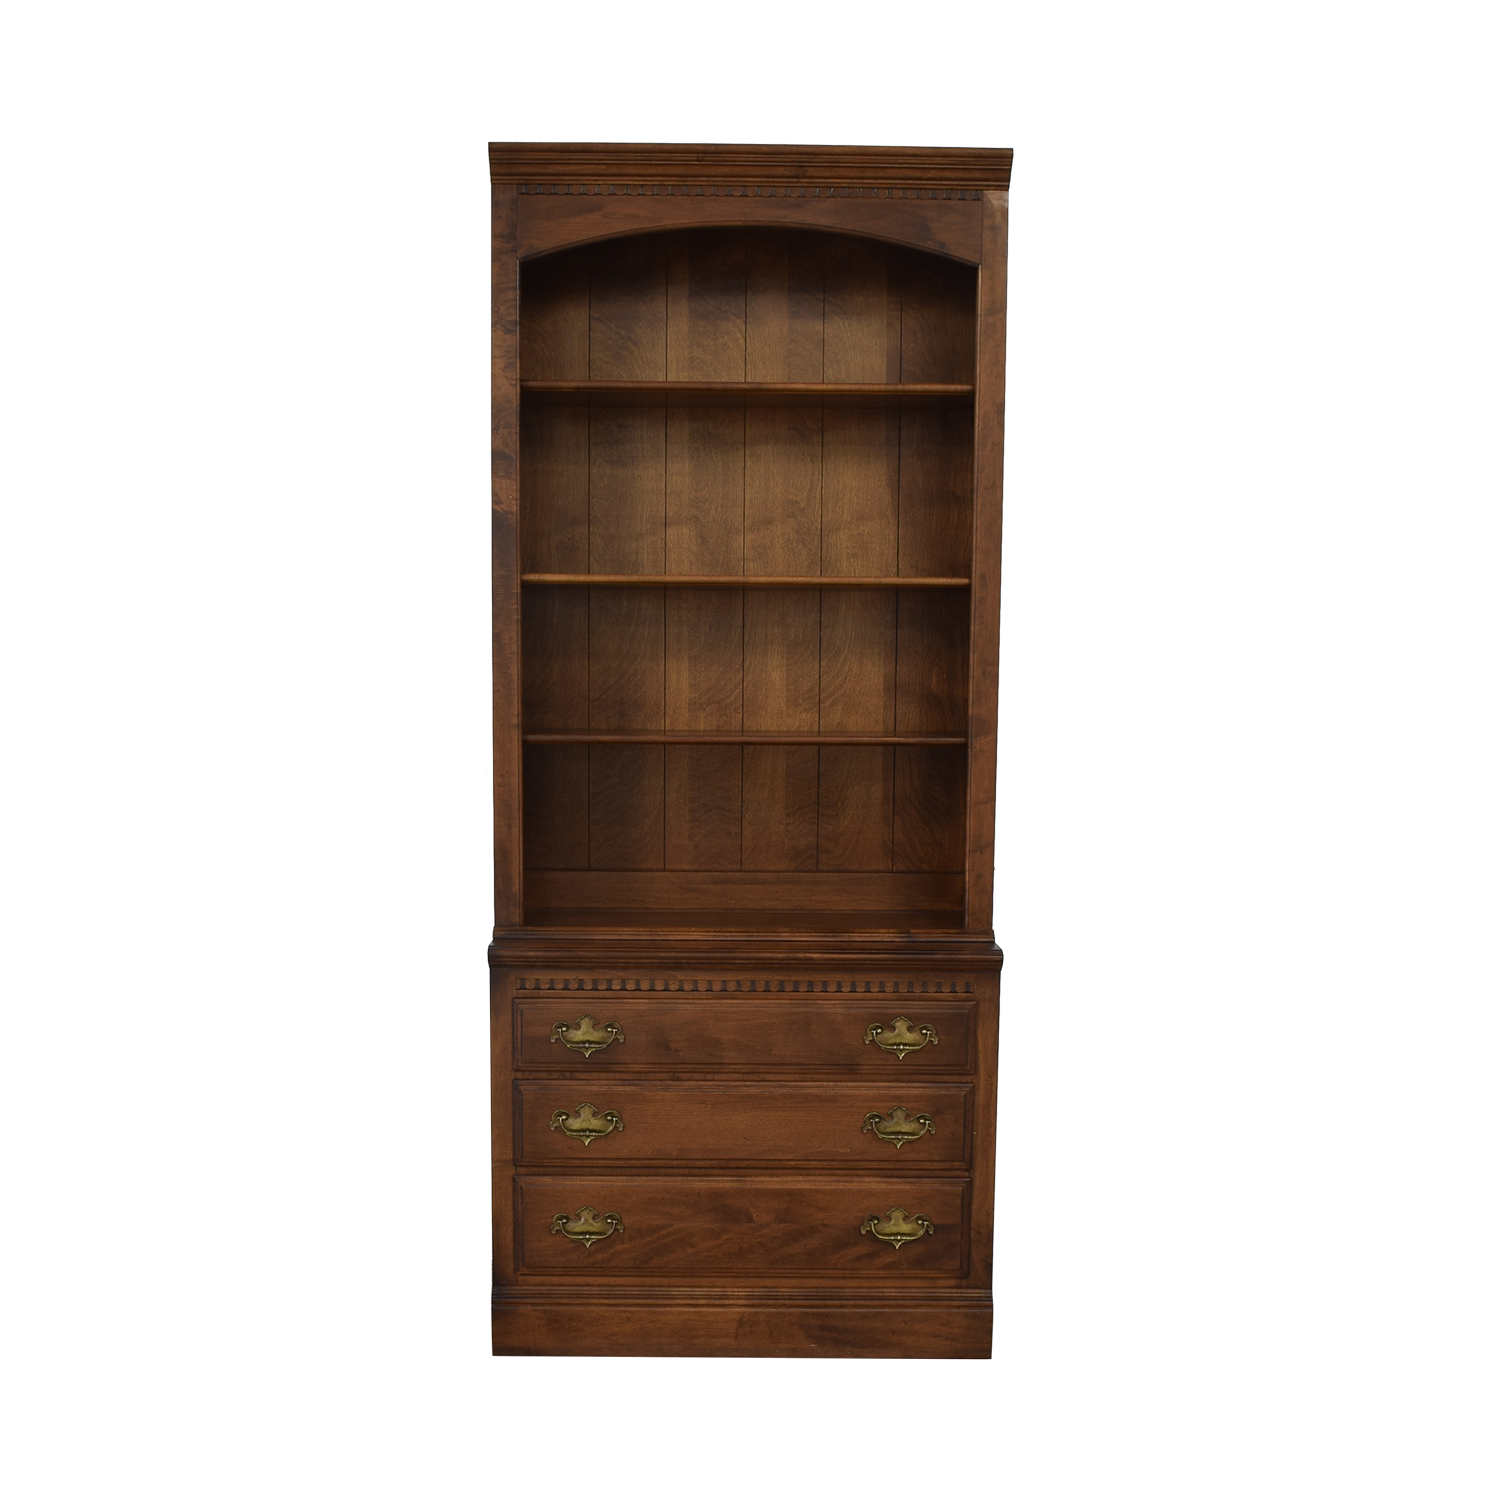 Ethan Allen Ethan Allen Bookcase with Drawers ct